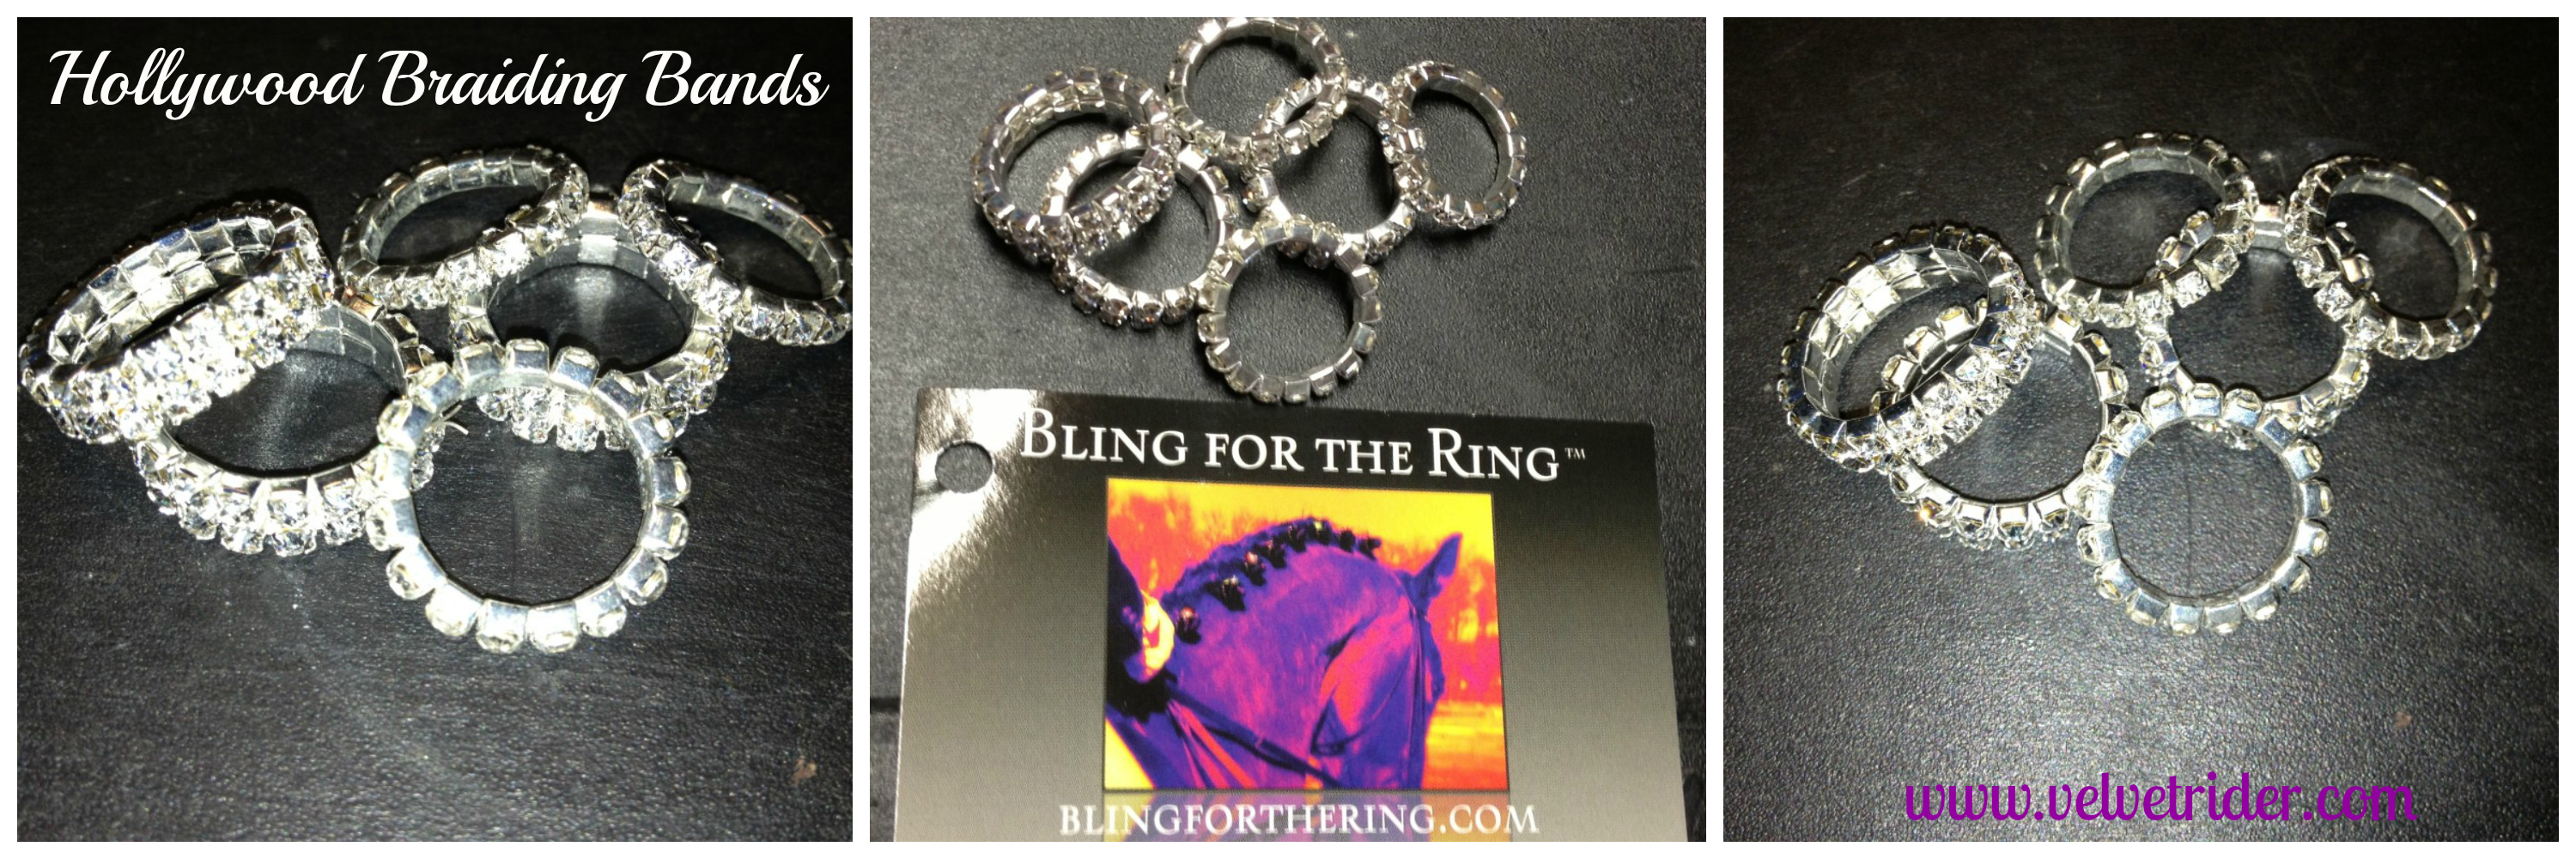 review bling for the ring rhinestone braiding bands velvet rider